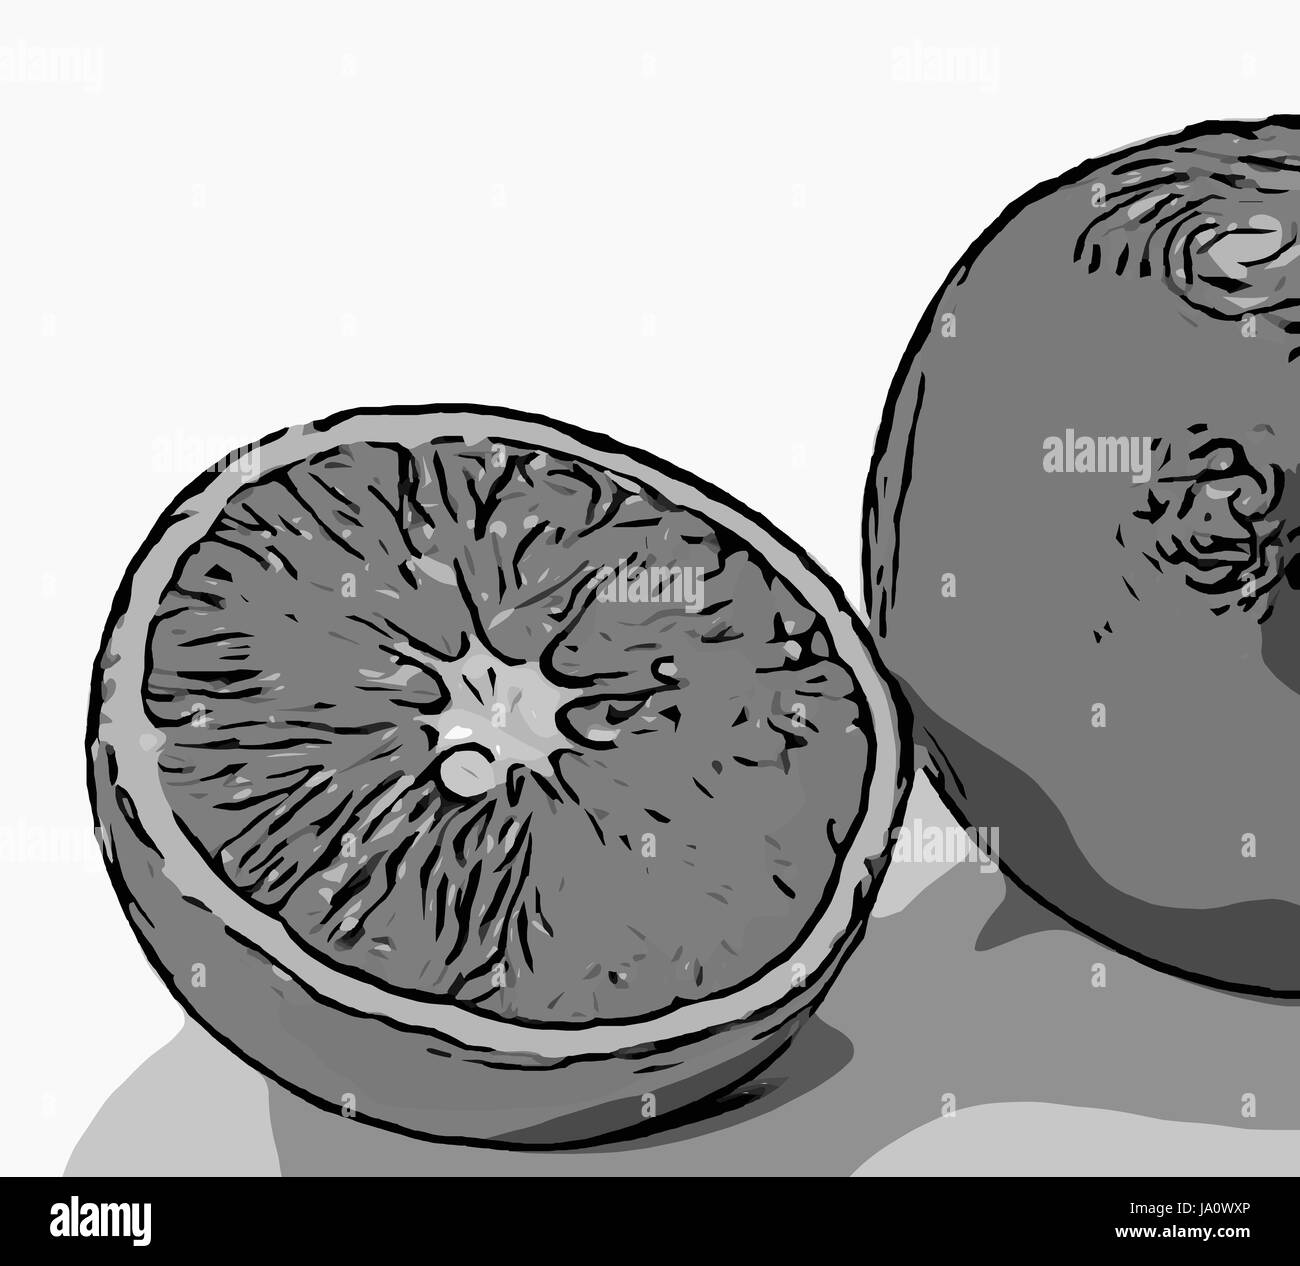 monochrome illustration of whole and sliced oranges on white background. - Stock Image